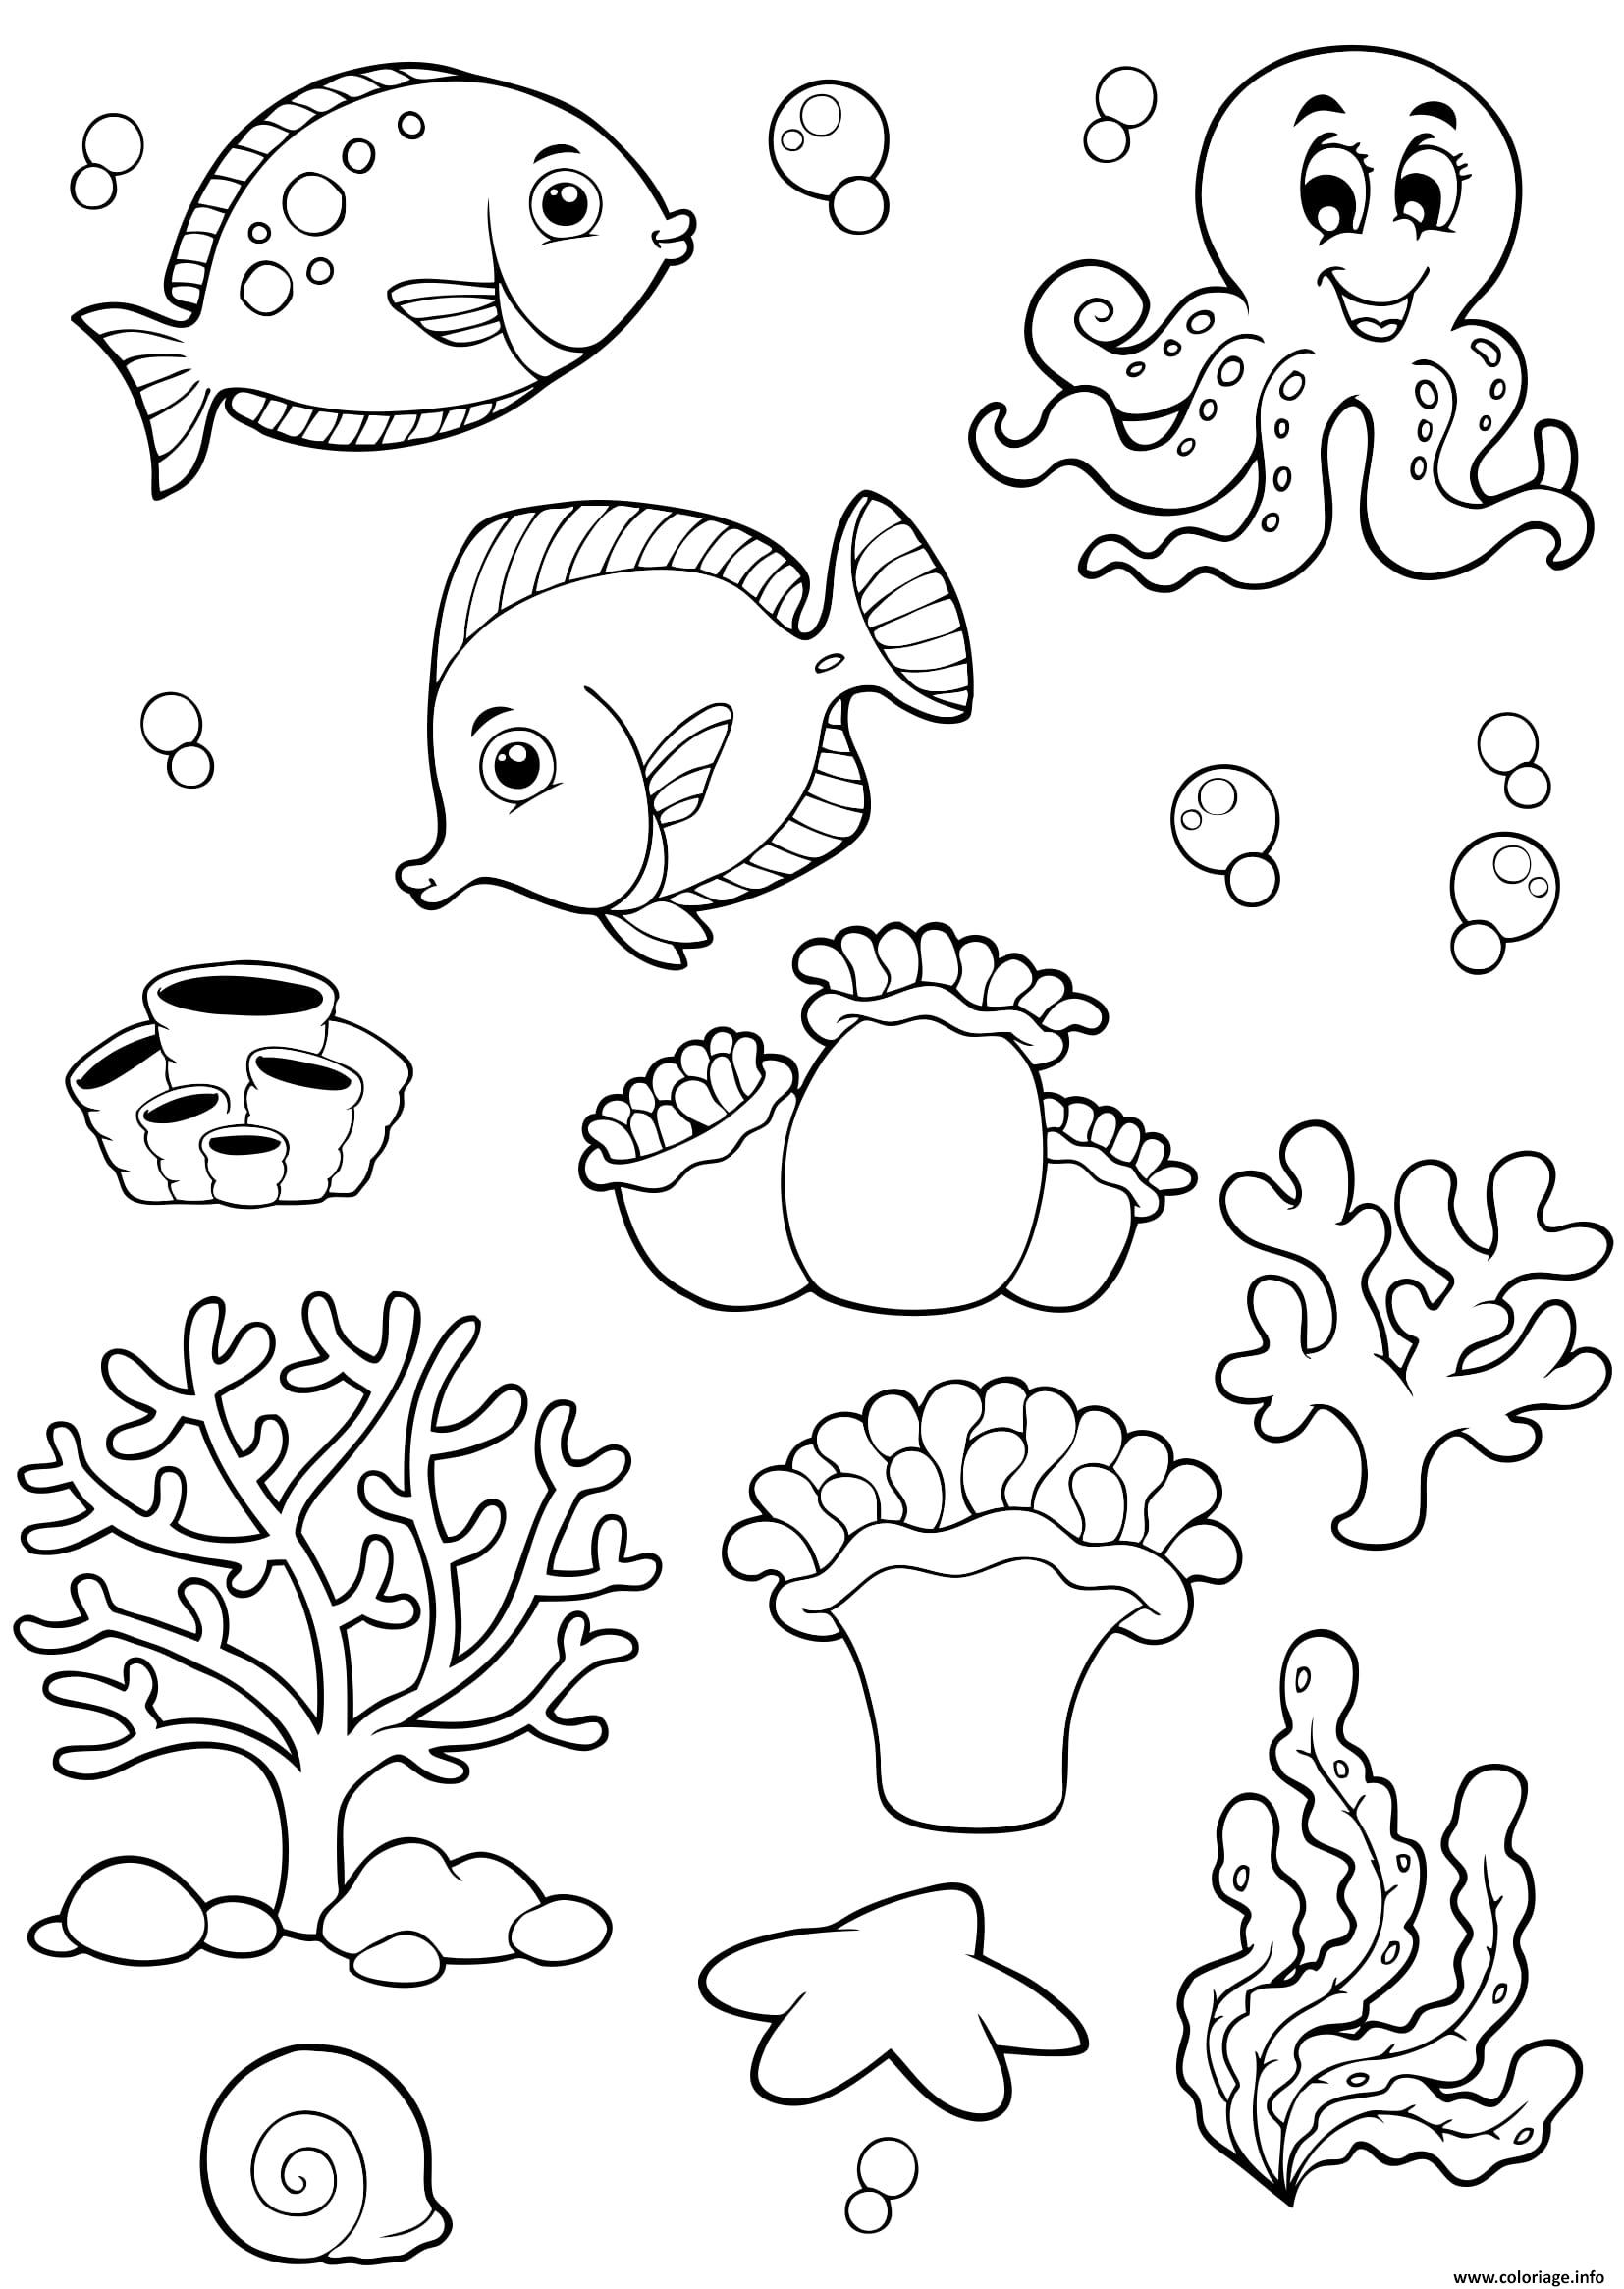 Baleine Facile Enfant Maternelle Coloriage 21330 likewise 391039180119297198 further 243757398560692476 additionally 319424 as well Rentree Maternelle Livre Scolaire Coloriage 13639. on heart coloring pages